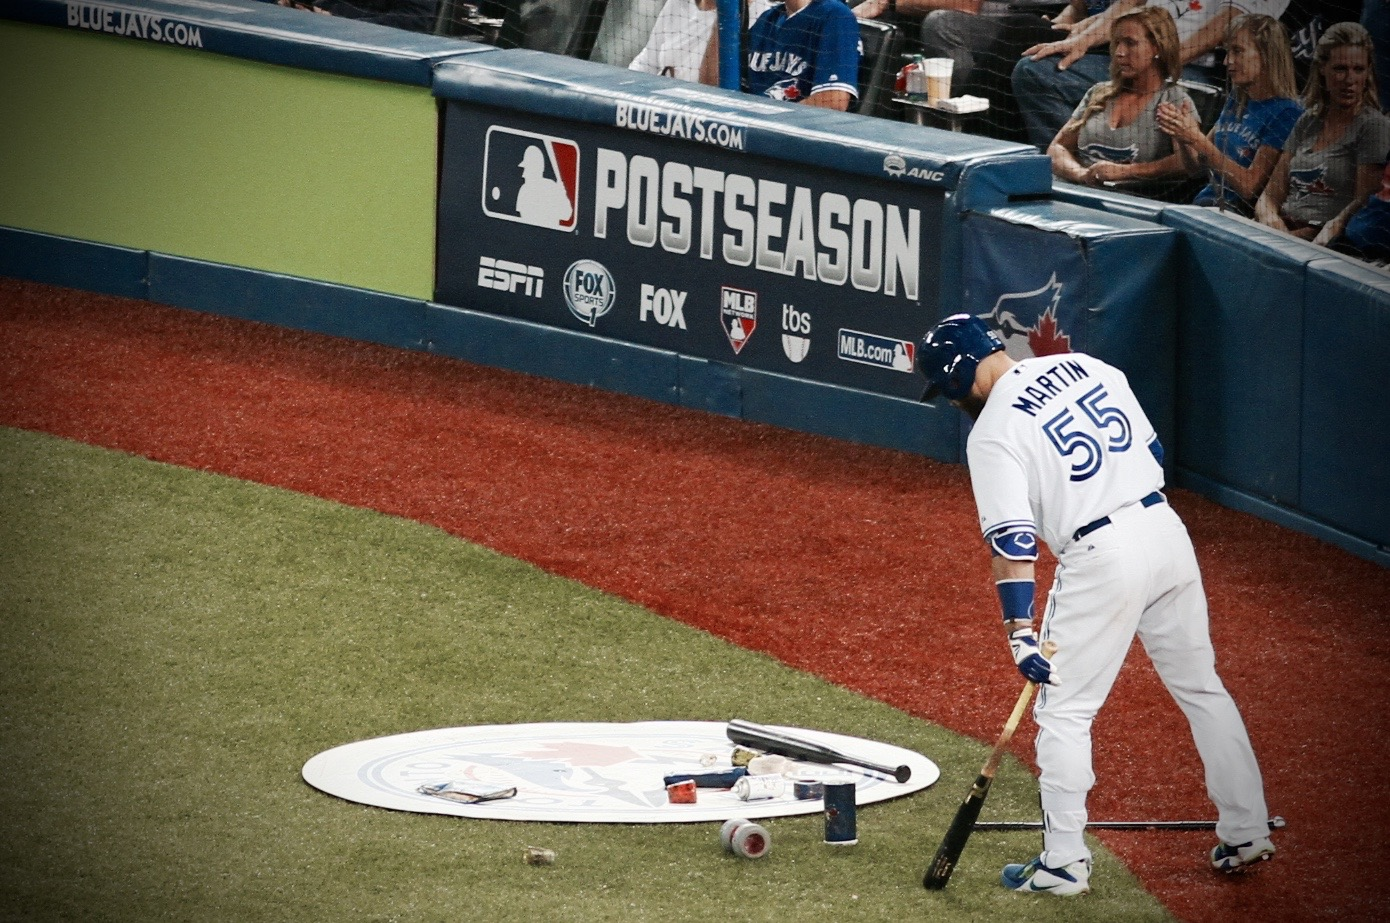 NOT MUCH HAS BEEN WORKING FOR THE BLUE JAYS OFFENCE IN THE POSTSEASON ... THAT WILL NEED TO CHANGE QUICK IN THE ALCS (photo: JEREMY KING)